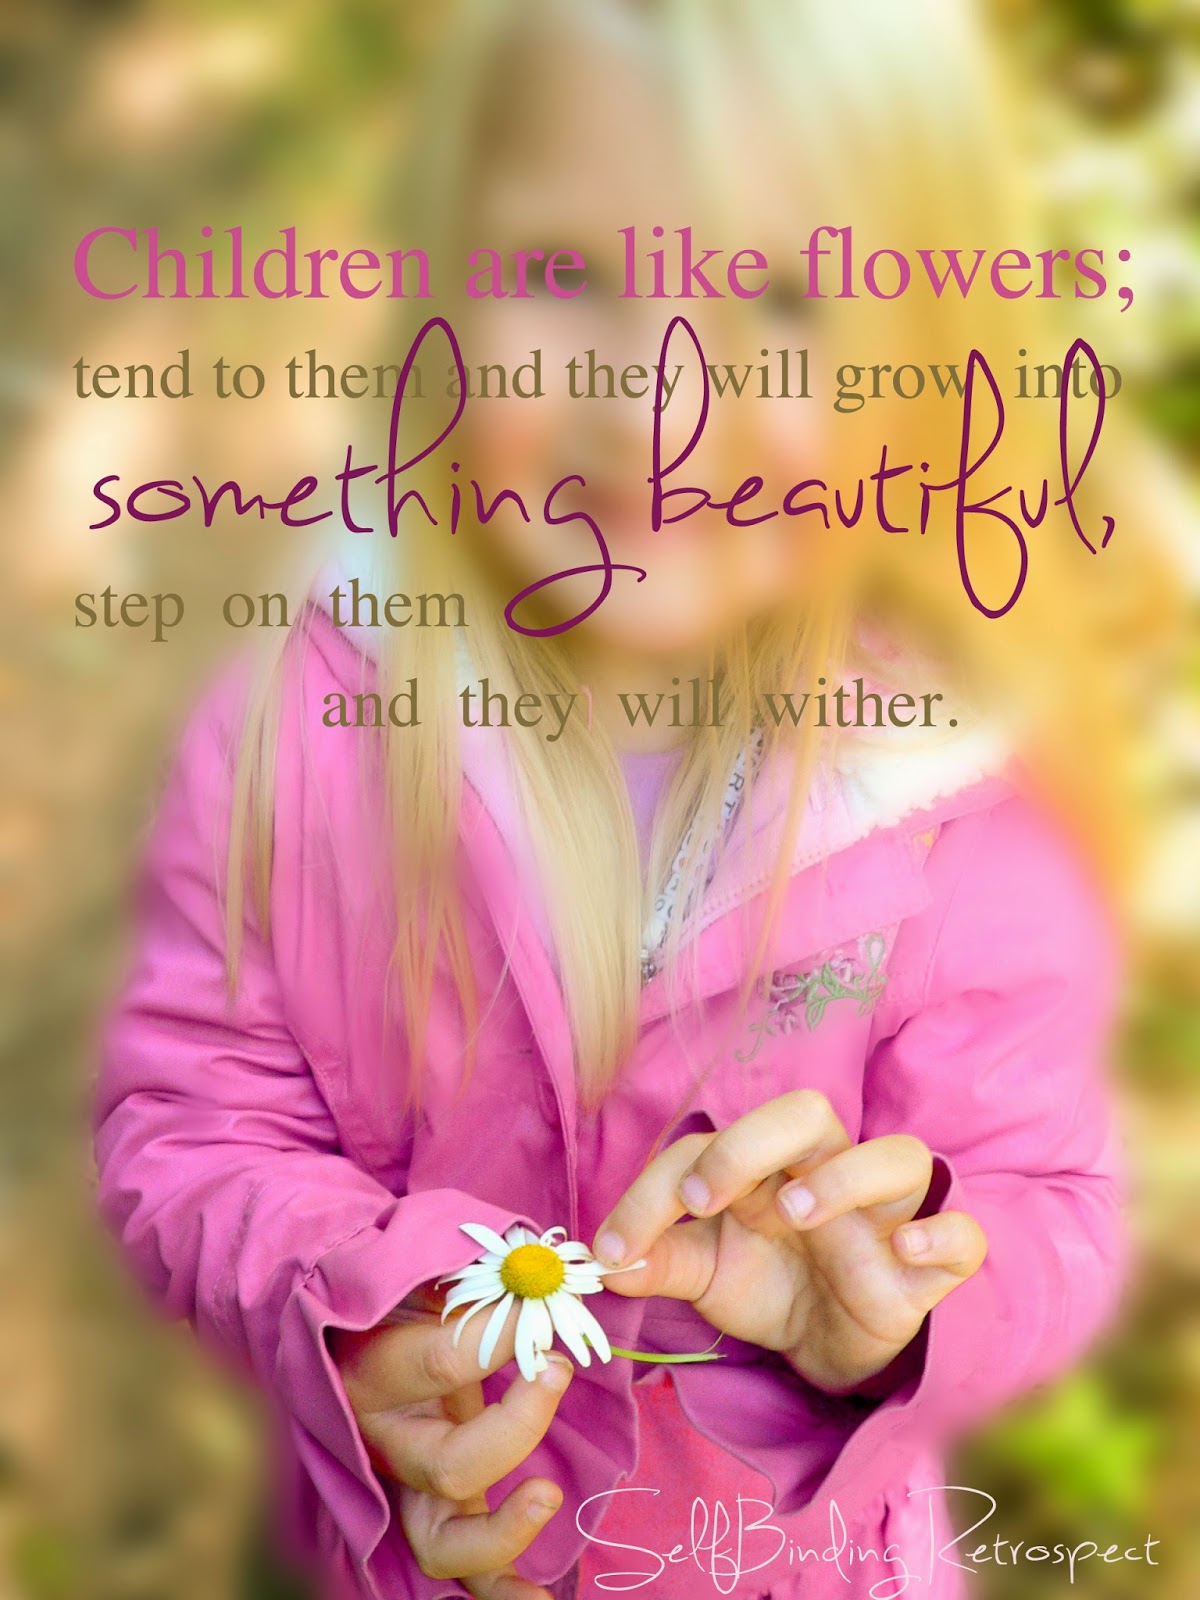 """""""Children are like flowers; tend to them and they will grow into something beautiful, step on them and they will wither."""" Alanna Rusnak, SelfBinding Retrospect"""